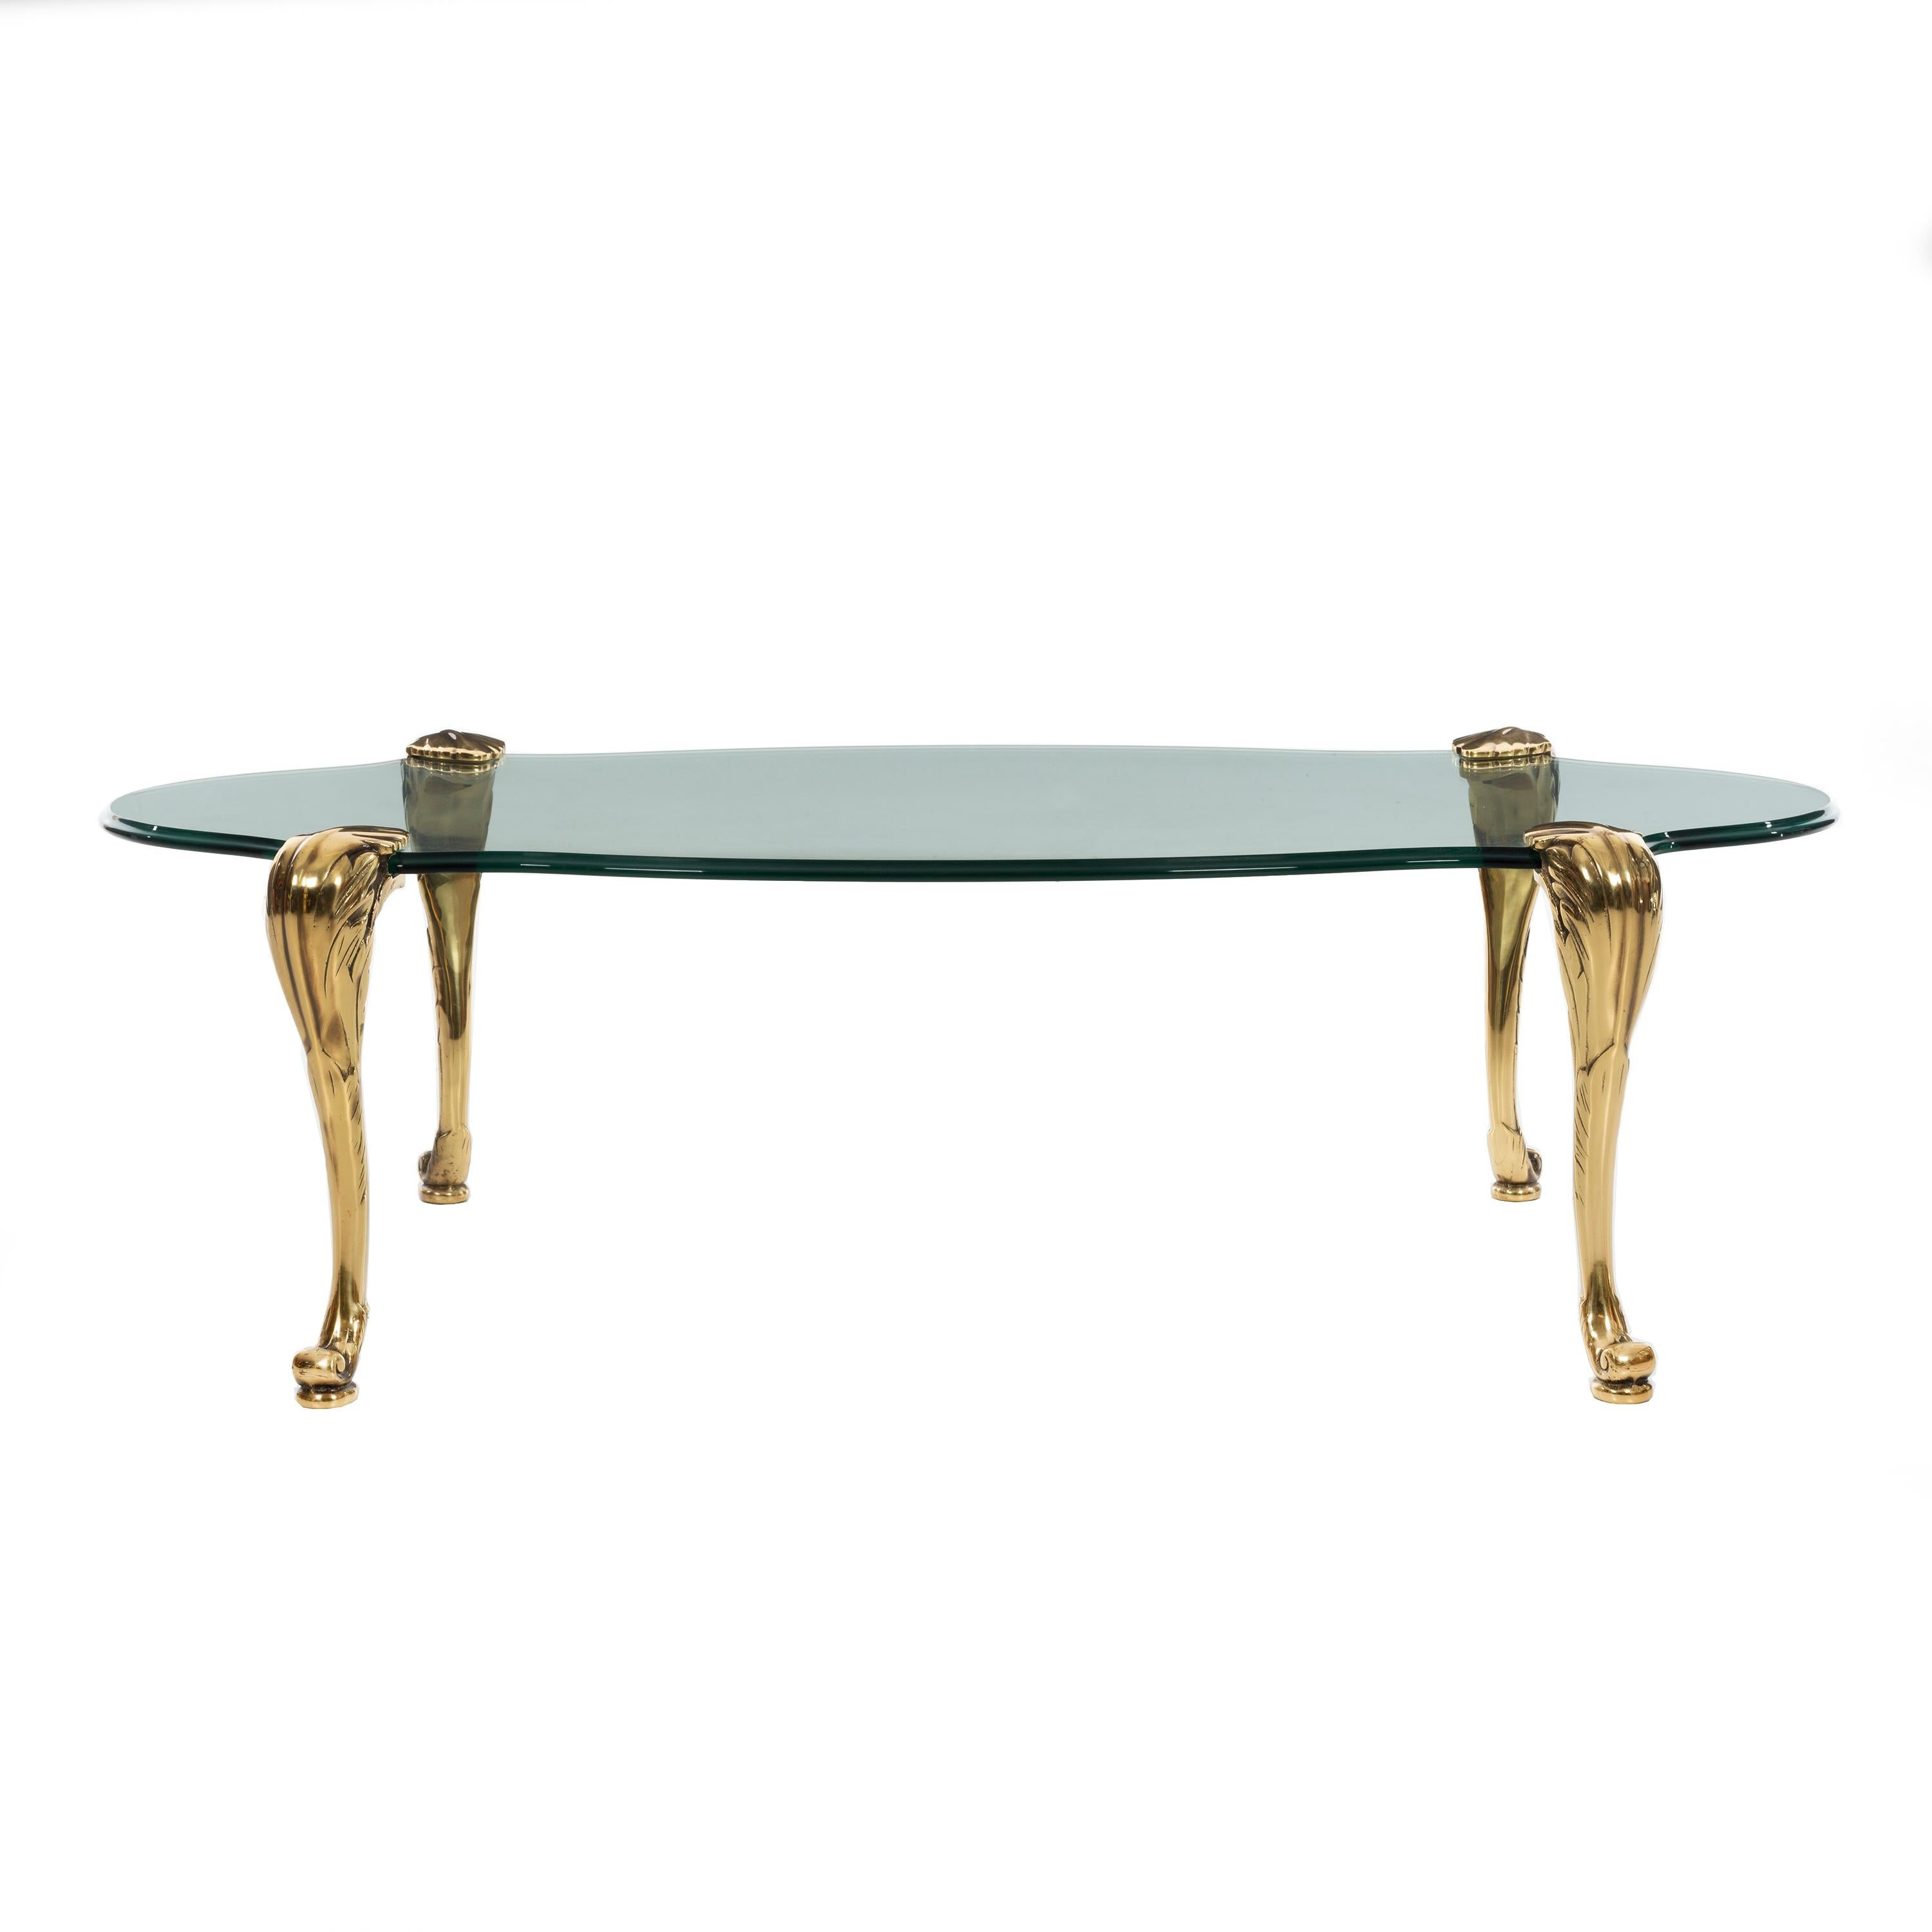 Glass Coffee Table with Ornamental Saber Legs